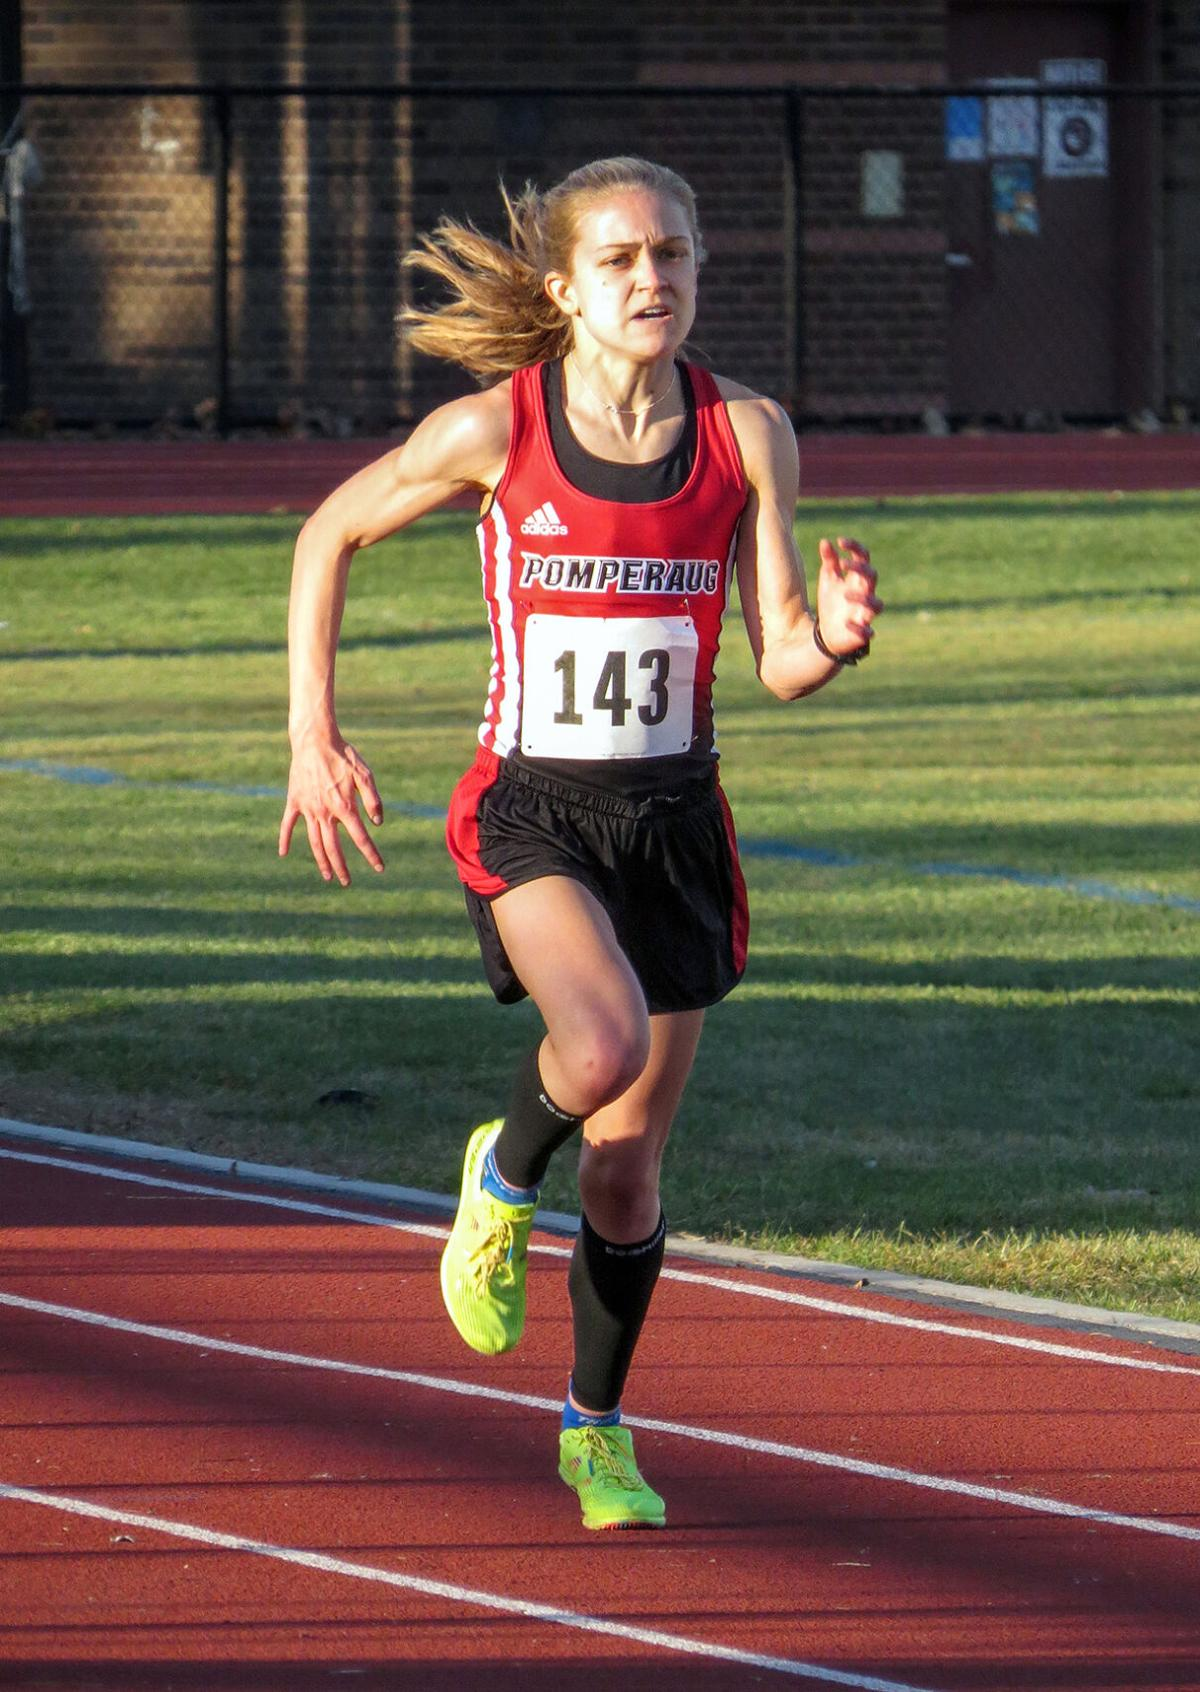 Pomperaug Runner Wins Fourth Consecutive South-West Title